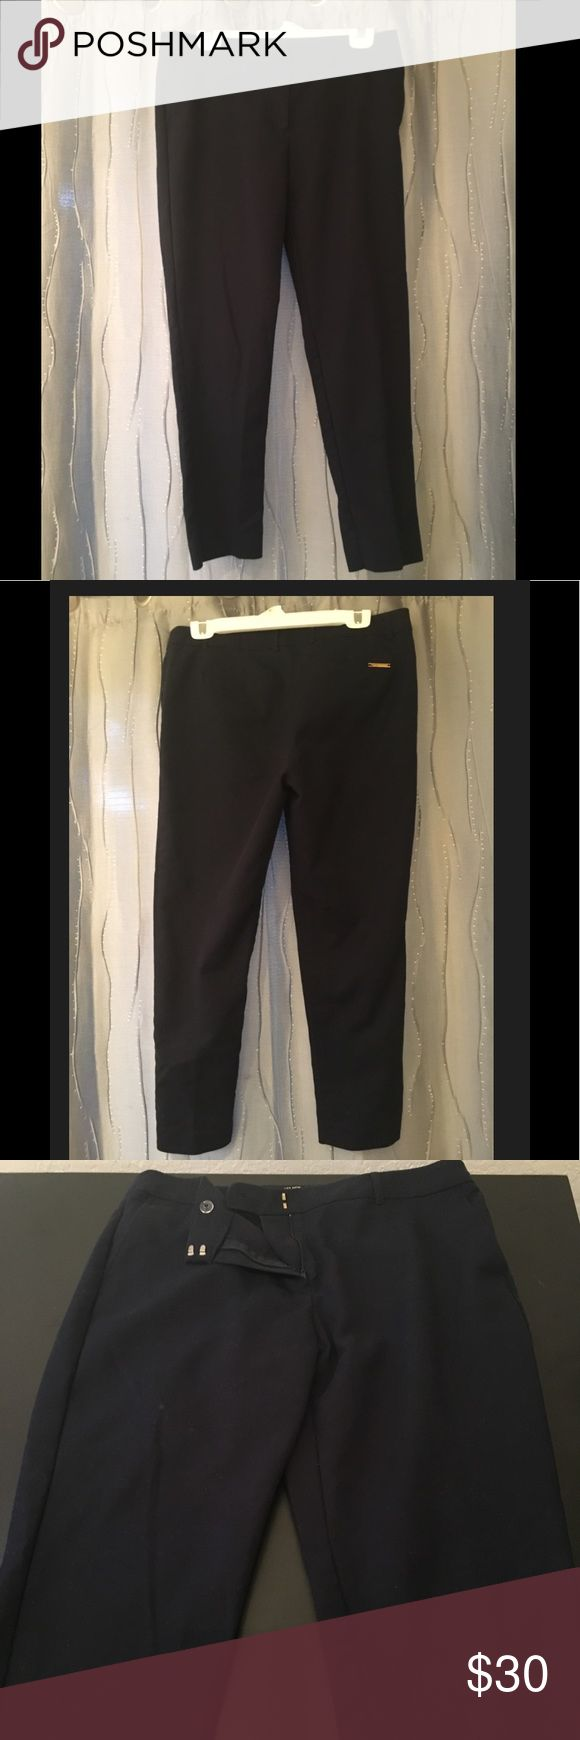 Jones New York Stretch Pant, Navy, size 10 Navy blue dress pants. I would say it's a classic fit, kind of straight leg and hits about ankle length. Size 10. Excellent condition. Jones New York Pants